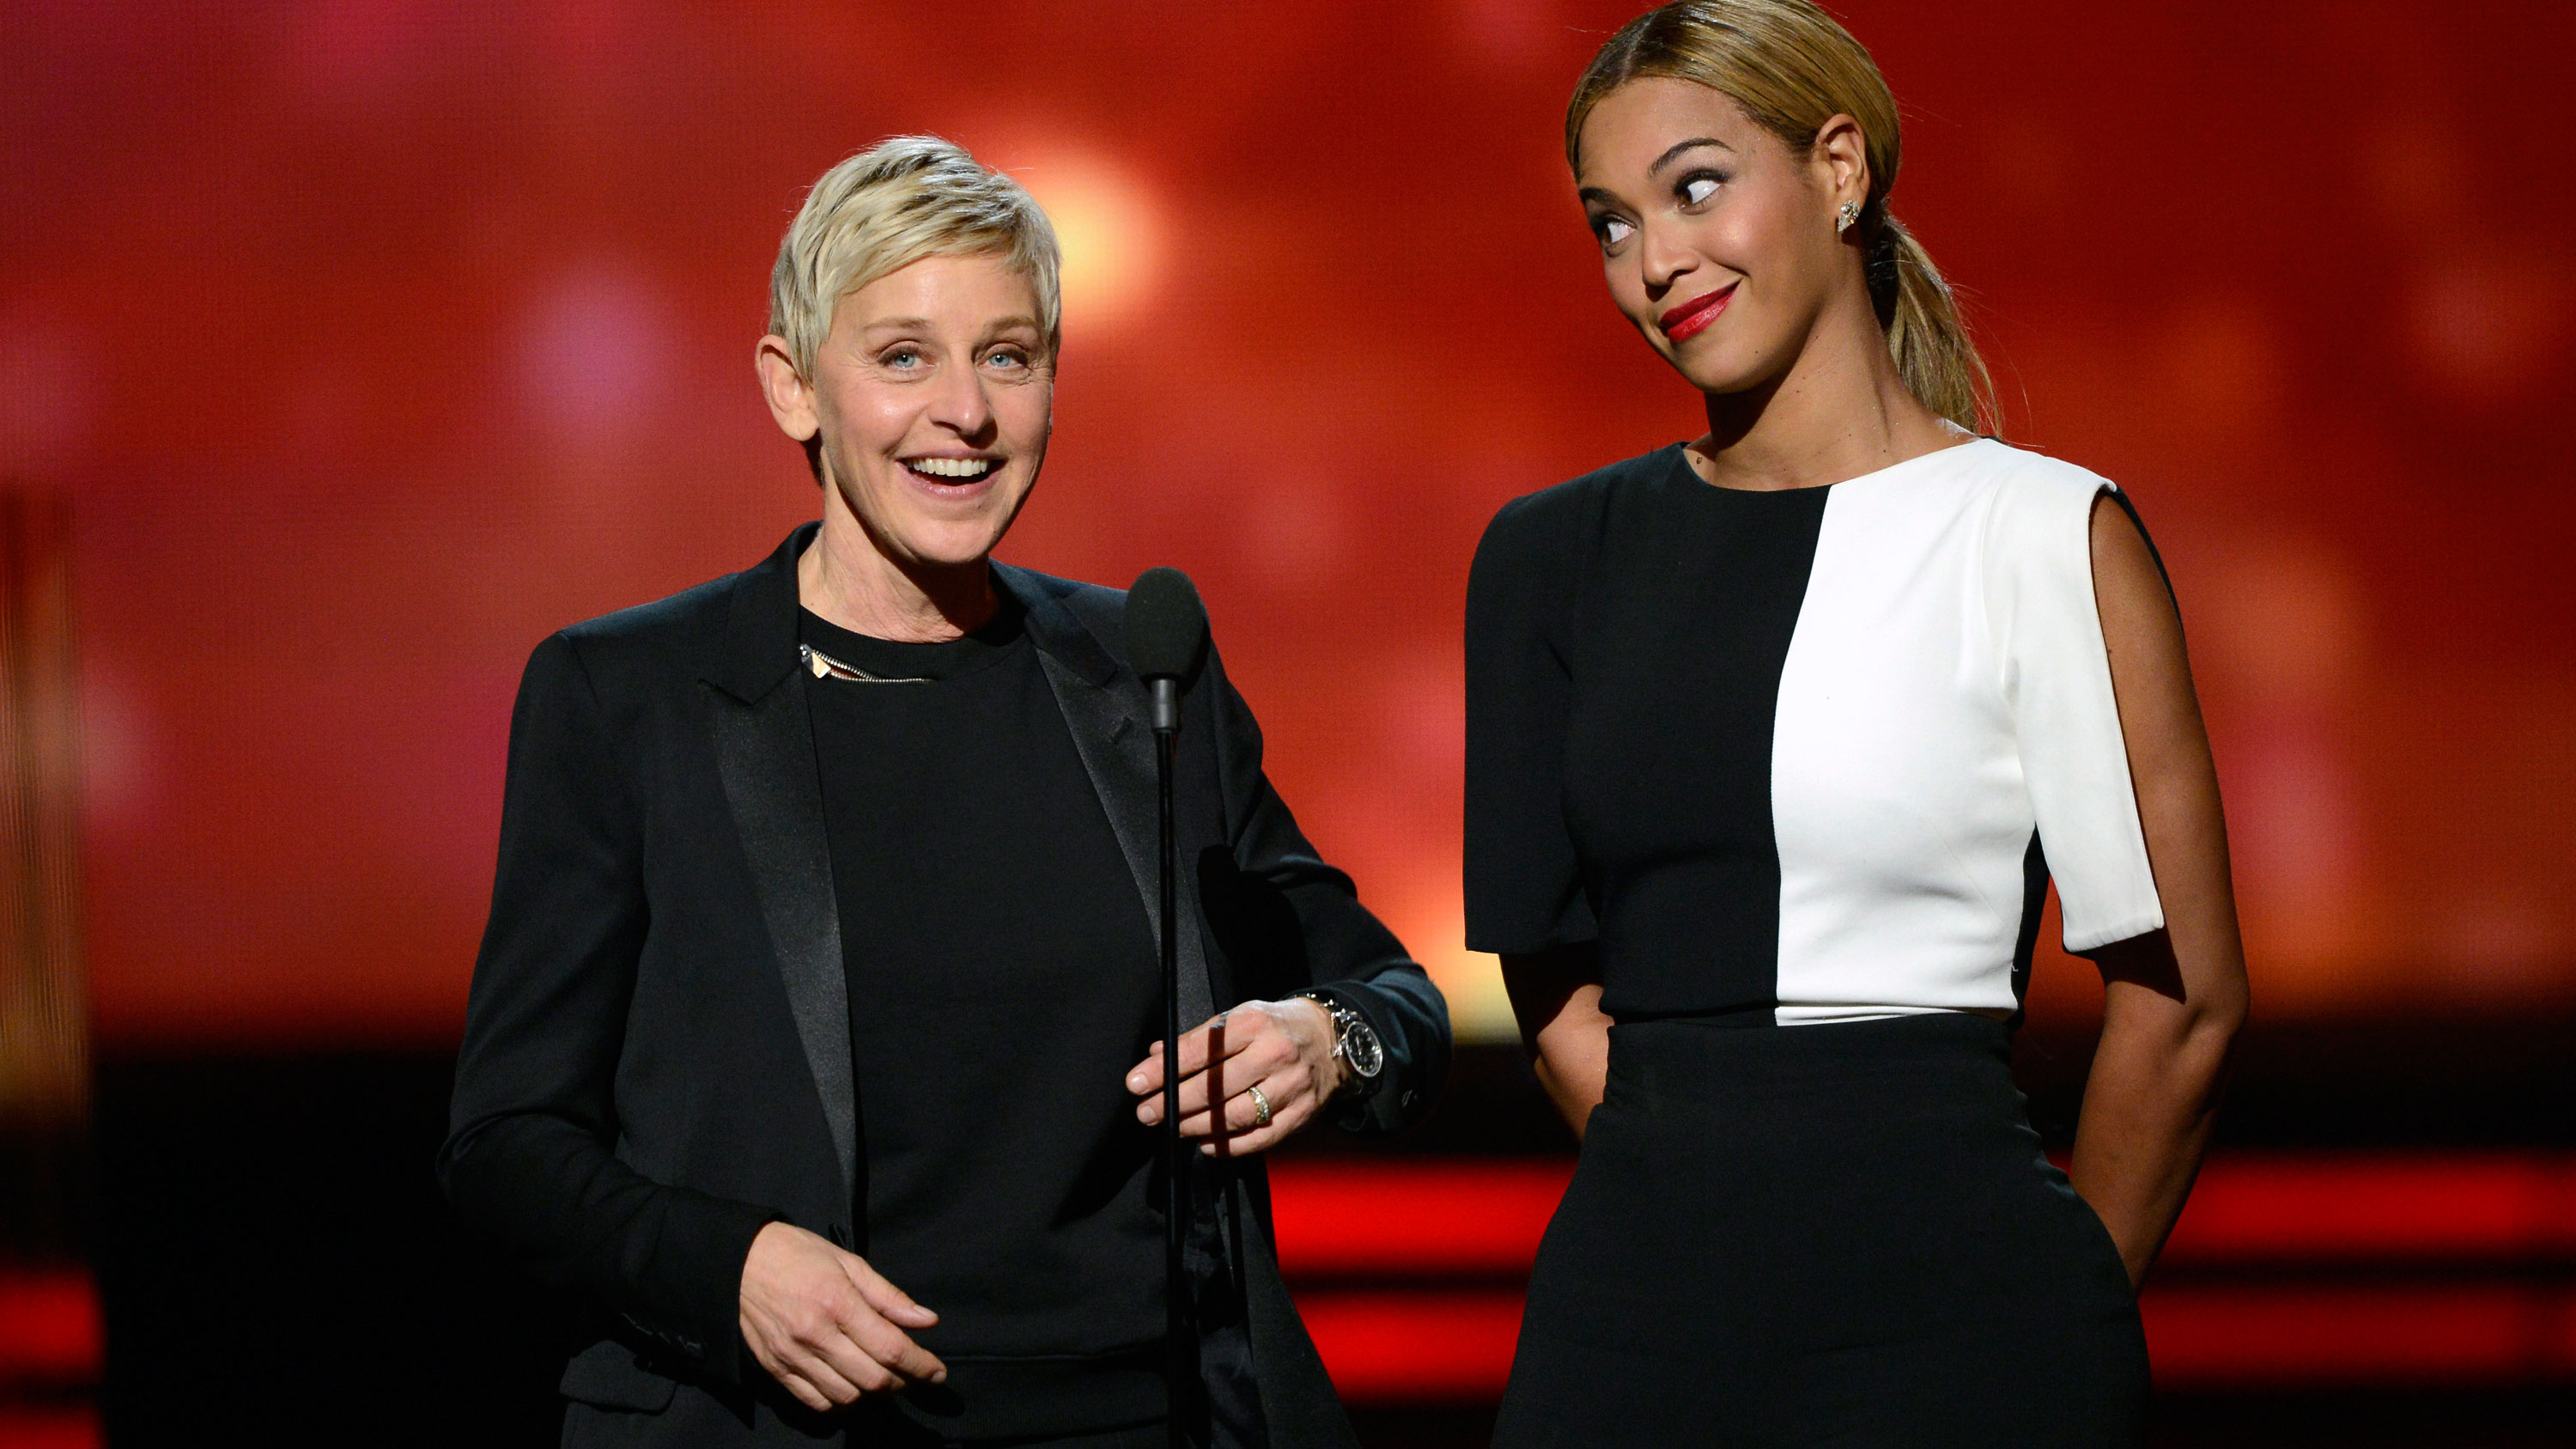 PHOTO: Ellen DeGeneres dons a monochromatic looks for presenting alongside Beyonce.